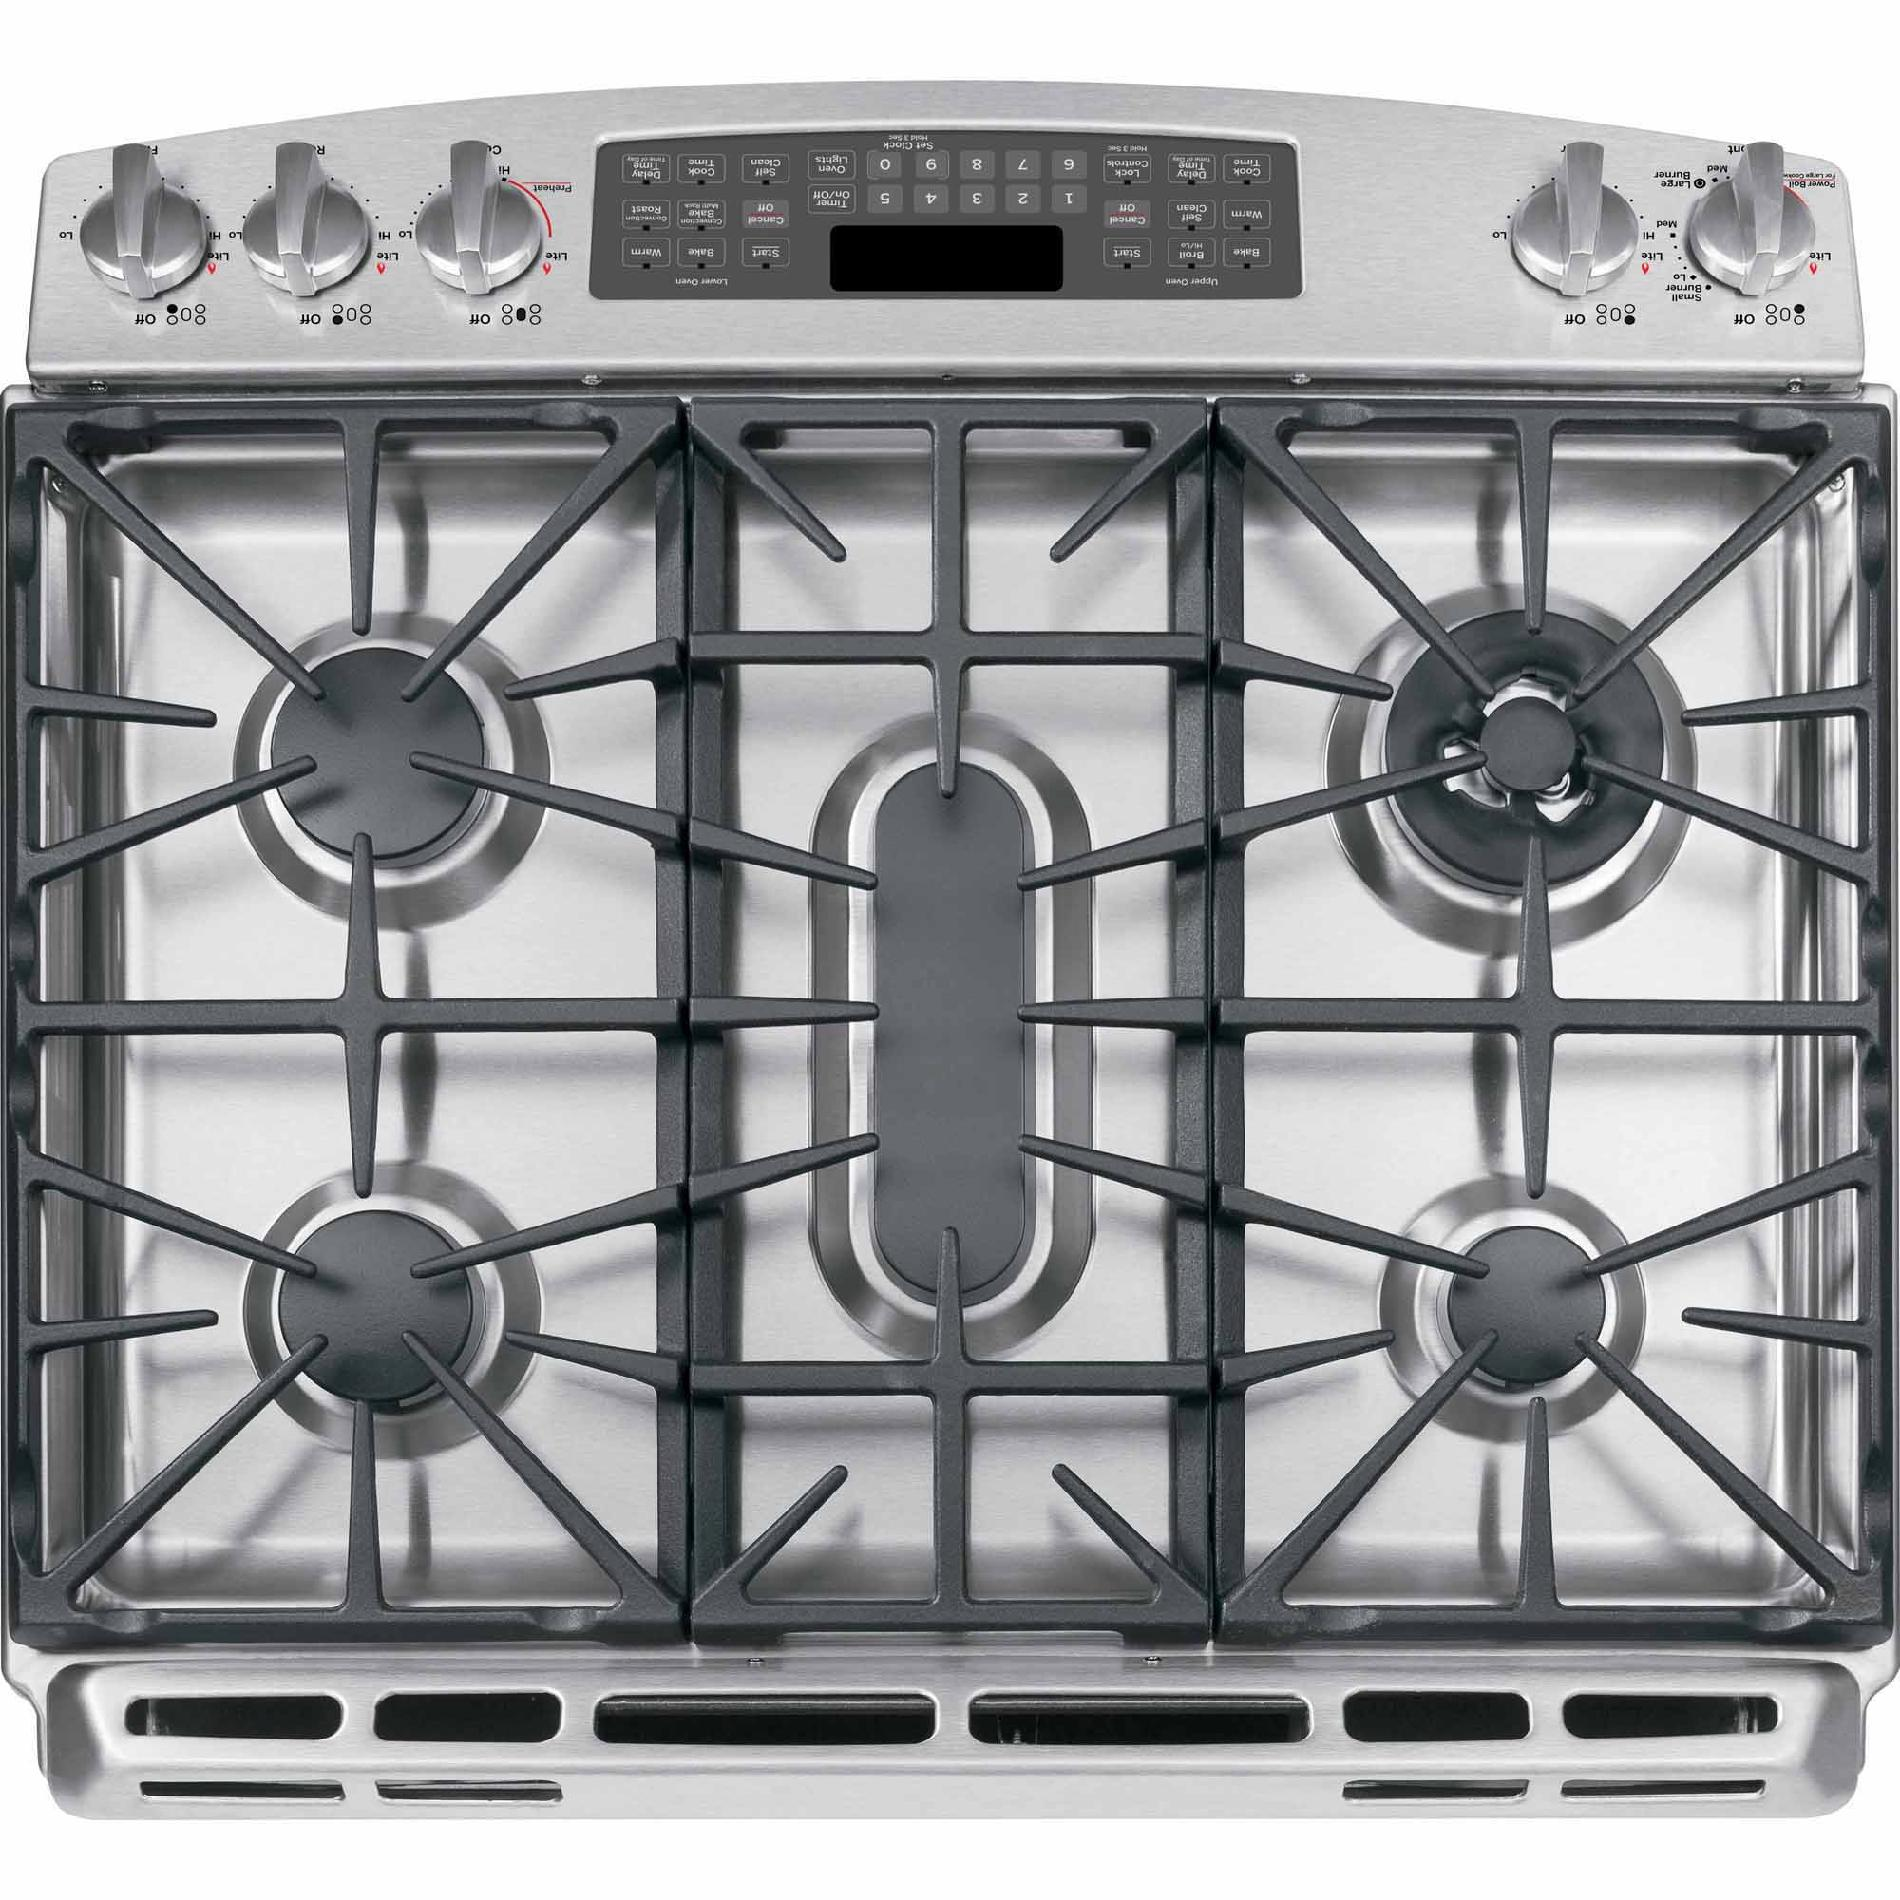 "GE Profile 30"" Slide-In Gas Range w/ Convection - Stainless Steel"